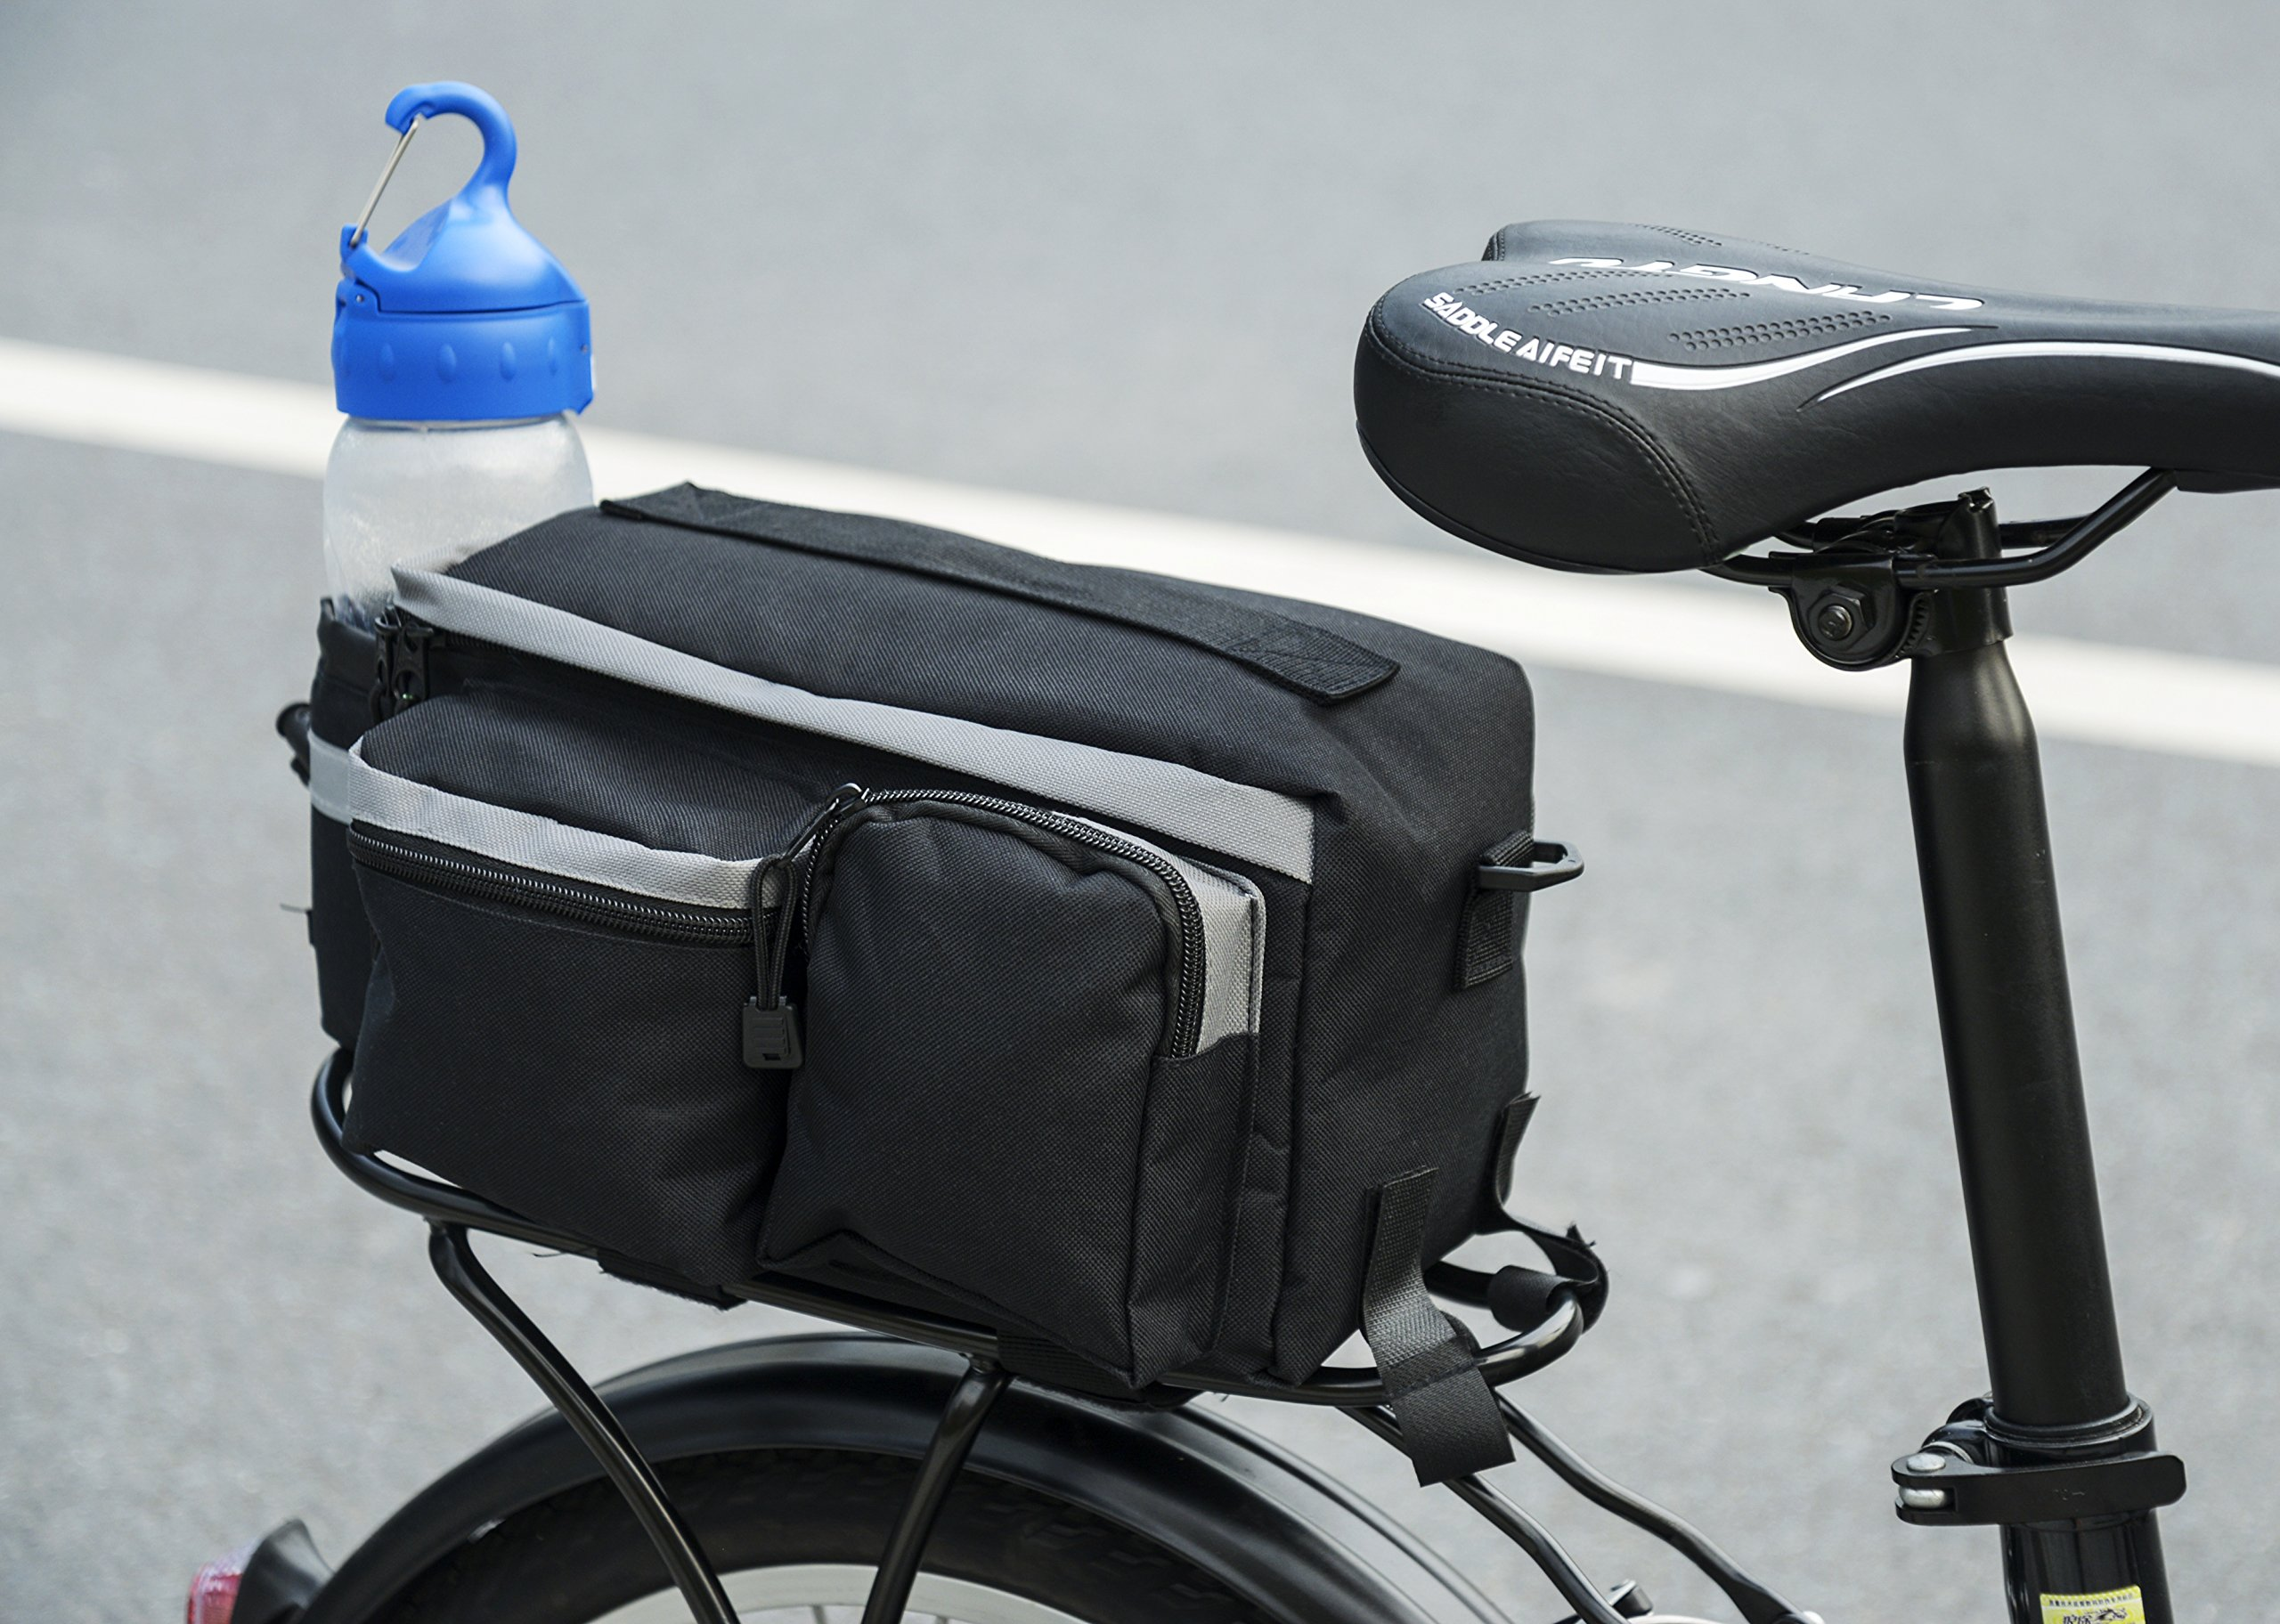 Roswheel 14024 Convertible Bike Bicycle Rear Rack Seat Pannier Trunk Bag with Cup Holder by Roswheel (Image #8)